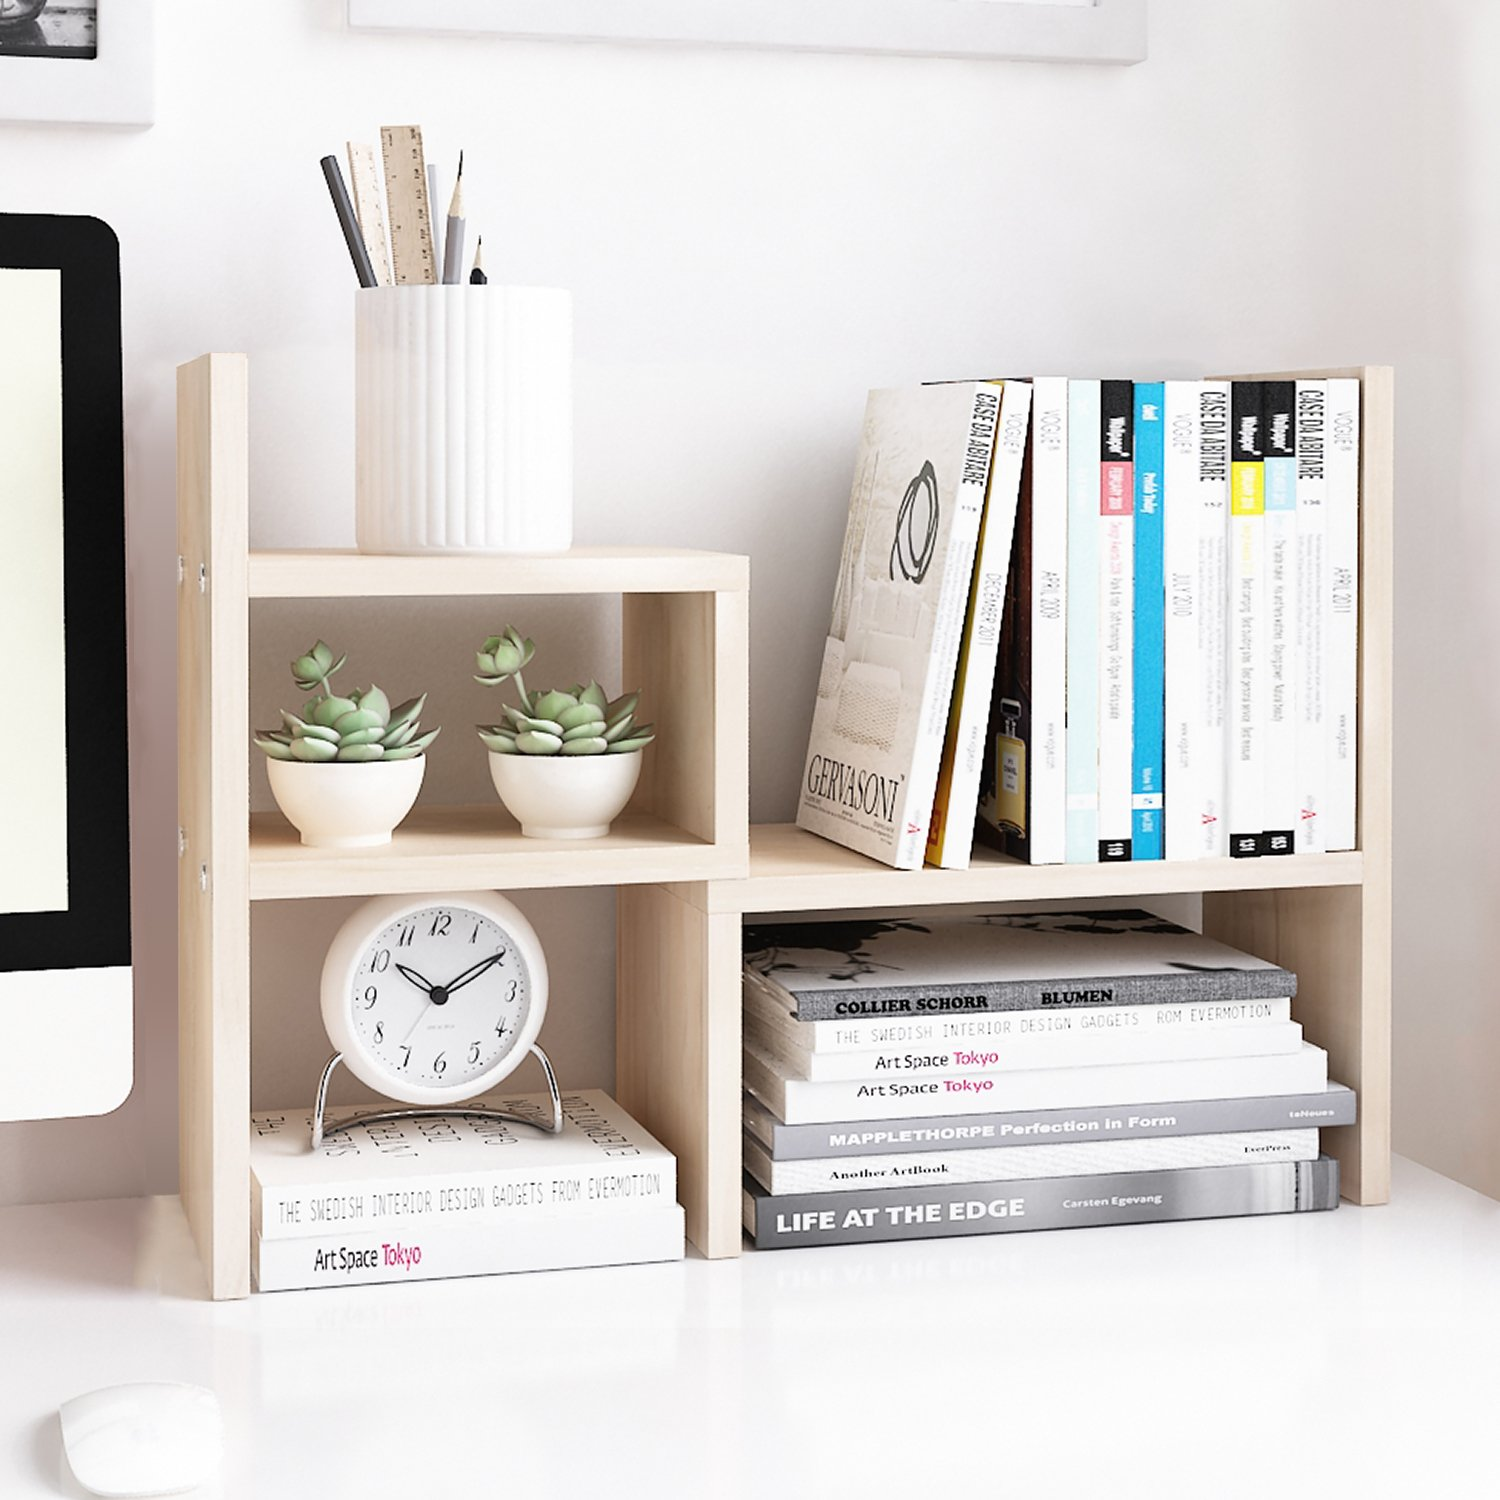 Jerry & Maggie - Desktop Organizer Office Storage Rack Adjustable Wood Display Shelf | Birthday Gifts - Toy - Home Decor | - Free Style Rotation Display - True Natural Stand Shelf White Wood Tone